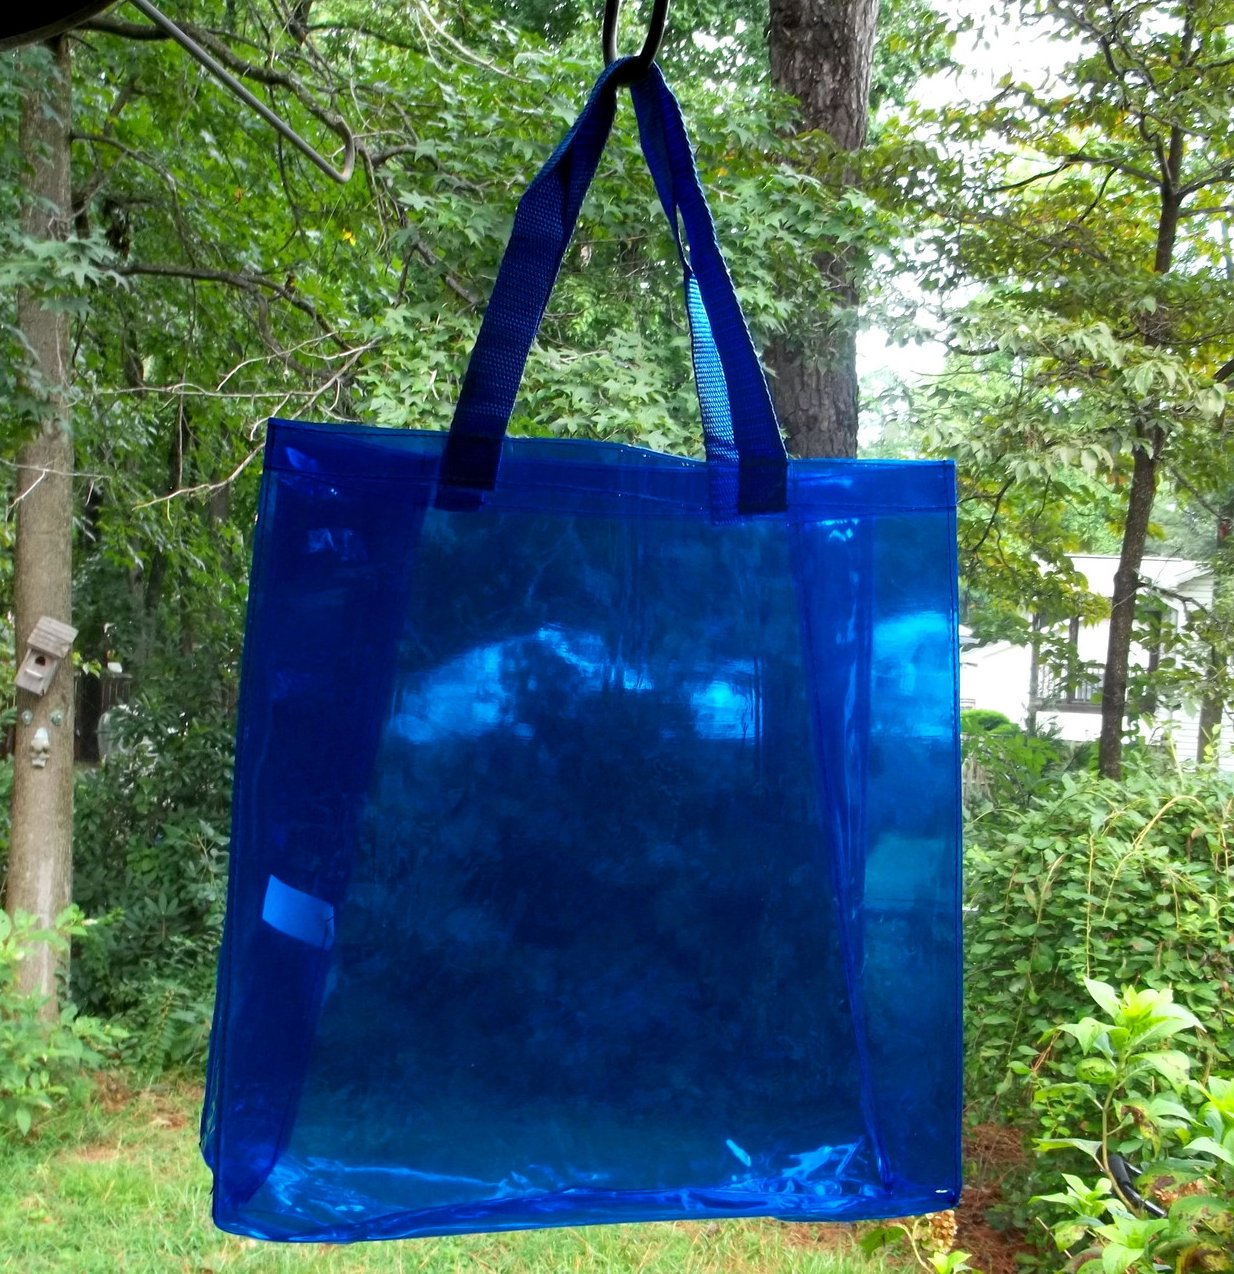 Tote Bag Vinyl Shopping Beach Travel Clear Sapphire Blue